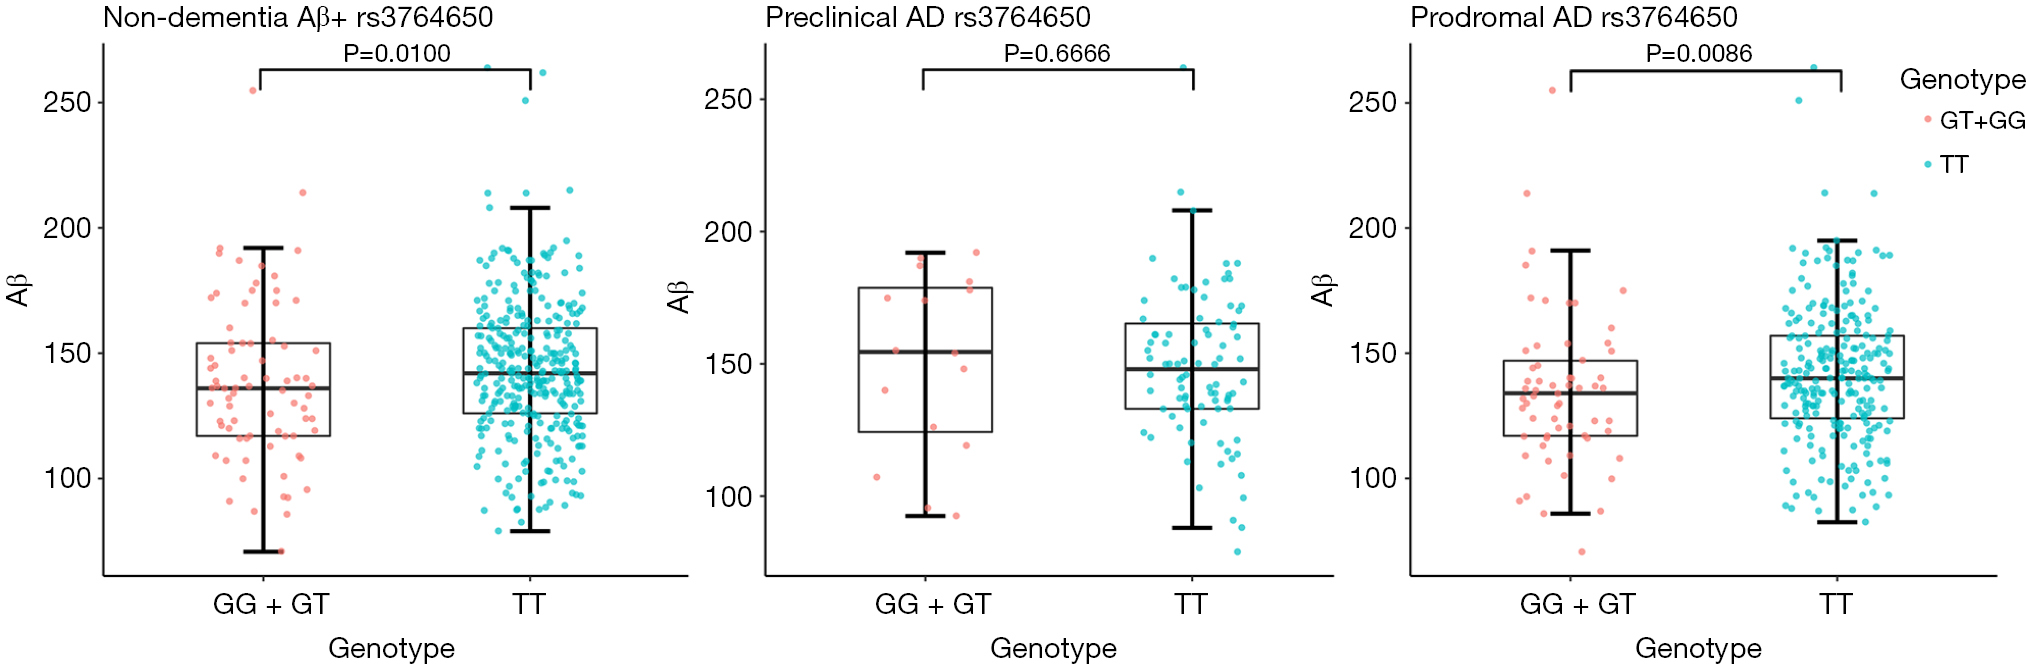 ABCA7 genotype altered Aβ levels in cerebrospinal fluid in